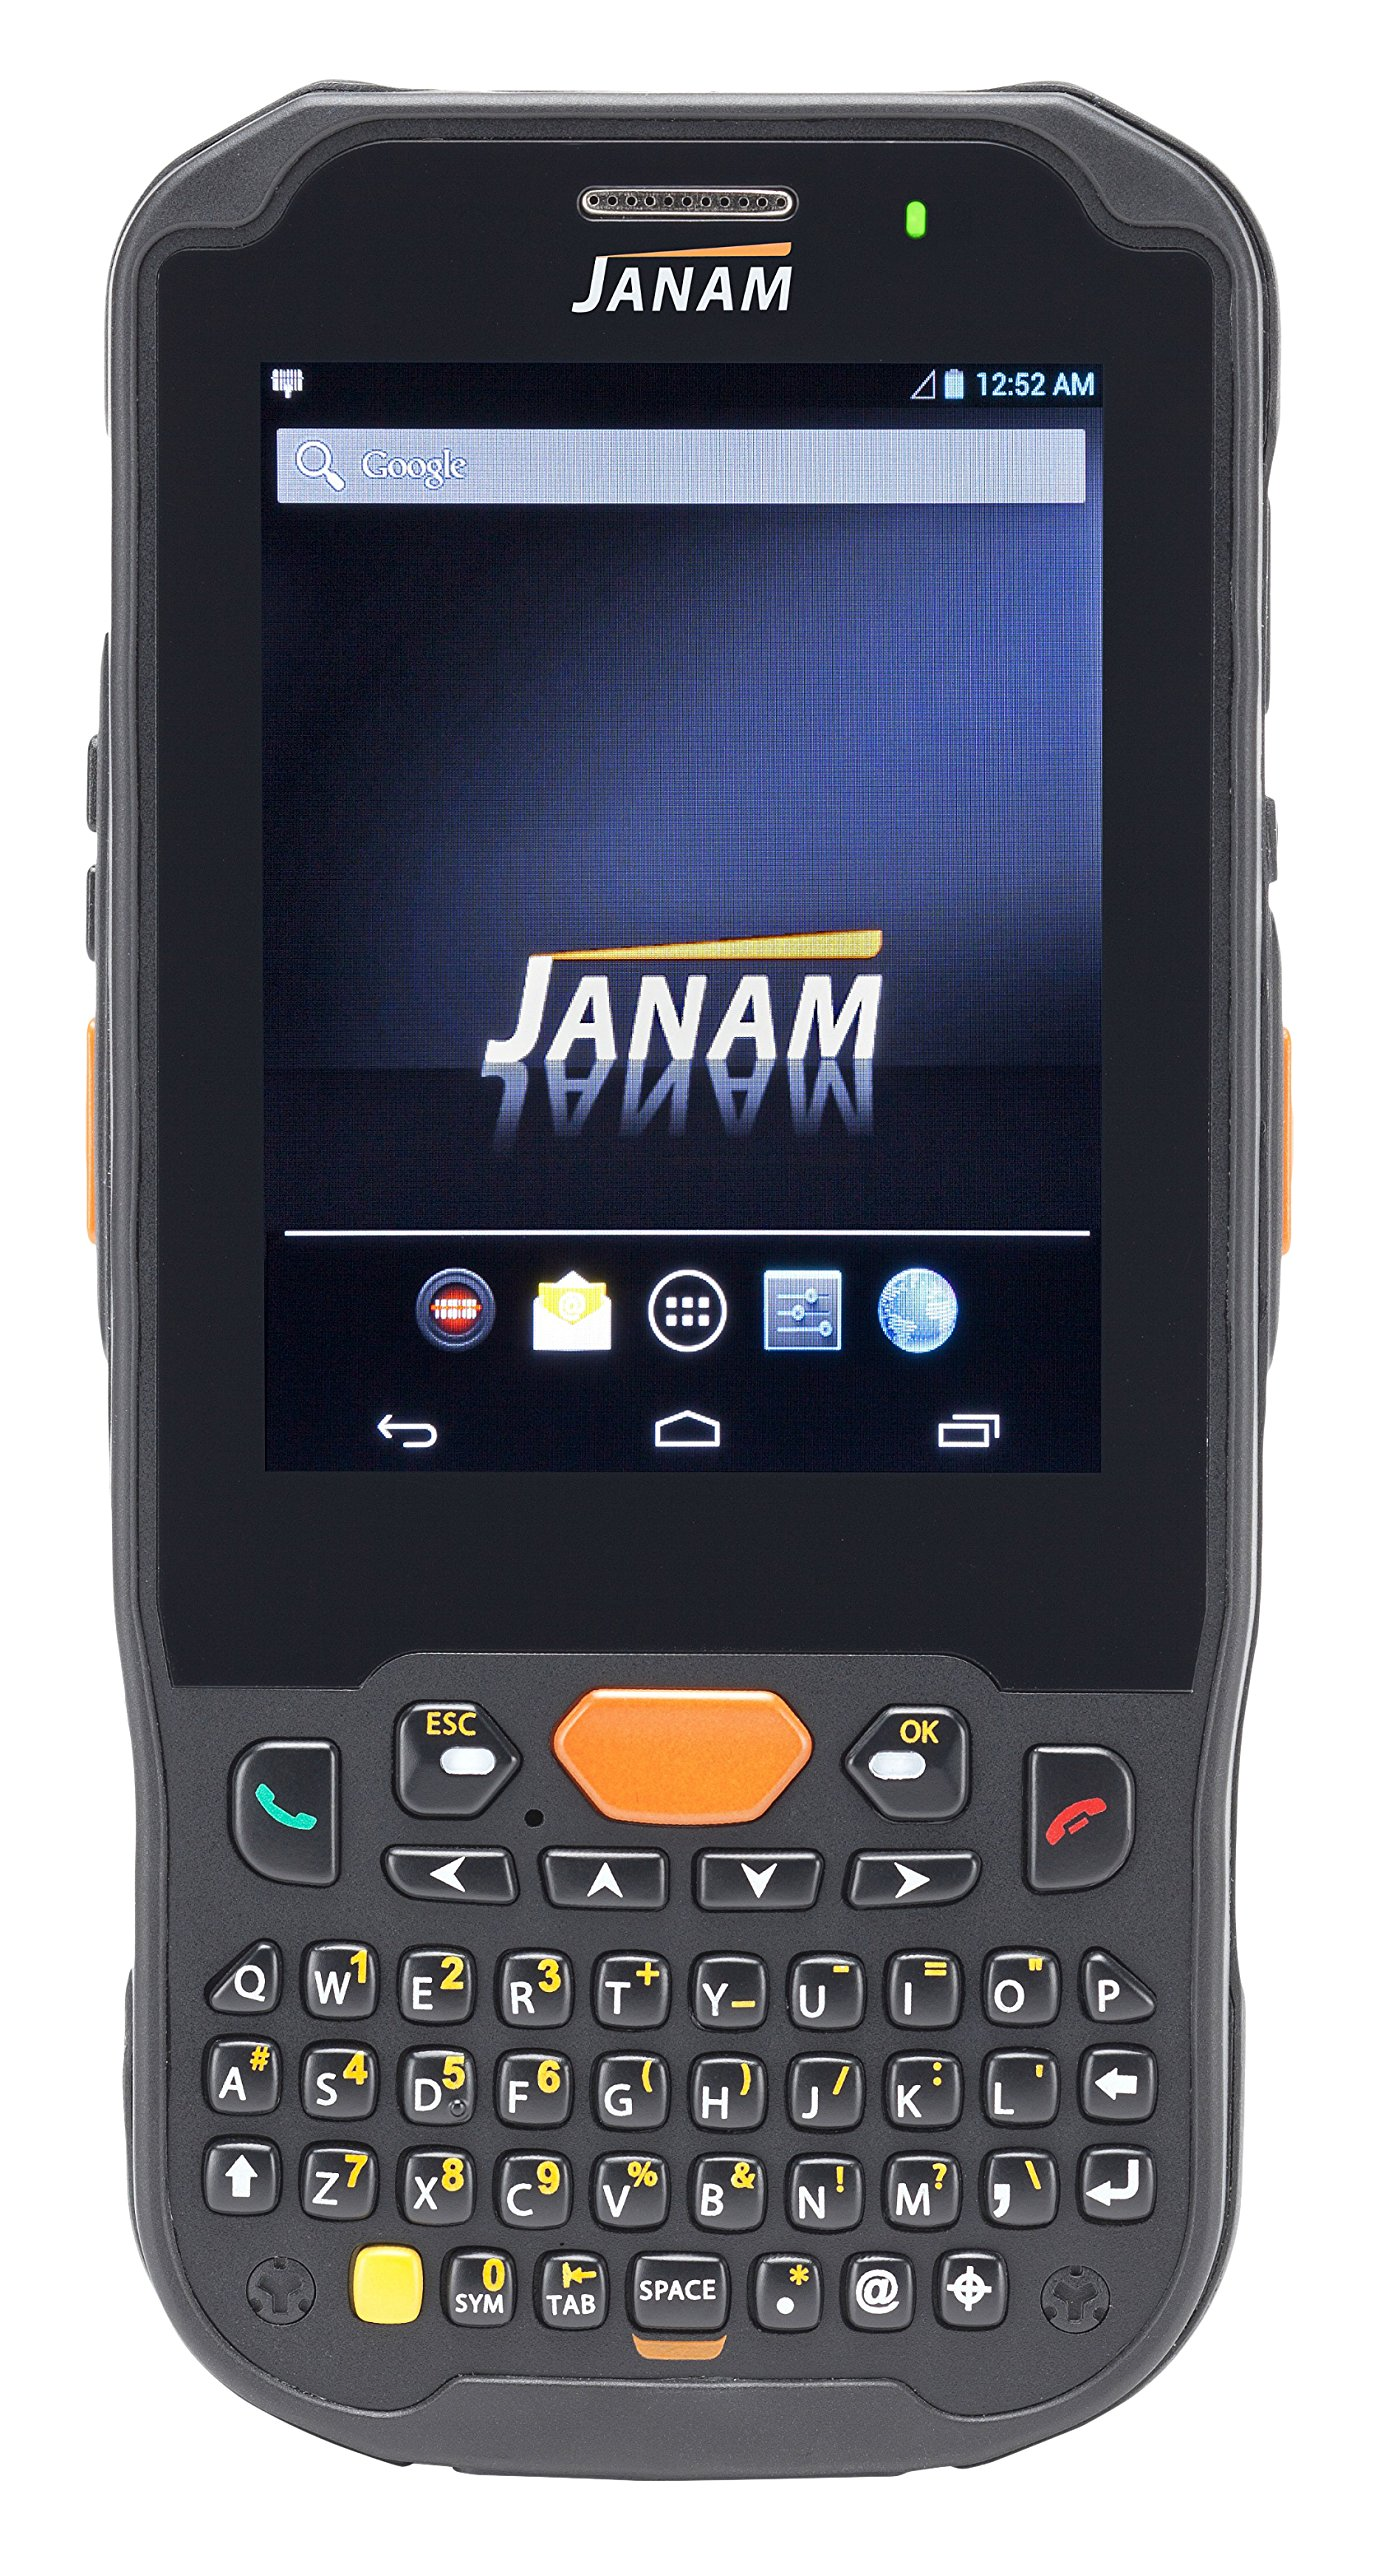 Janam XM5-1NKLRDGV00 Series XM5 Handheld Computing Devices, WEH 6.5, 2D Imager, 802.11ABGN, GPS, HF RFID, Bluetooth, Camera, 4000 mAh, Numeric Keypad by JANAM